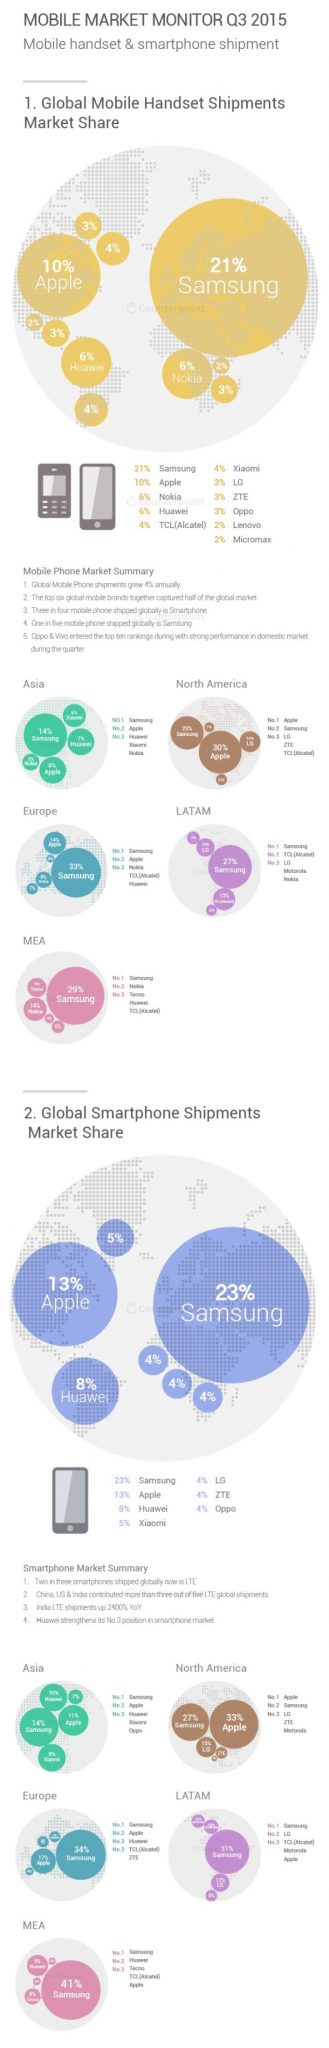 Infographic Q3-2015- Mobile Market Monitor